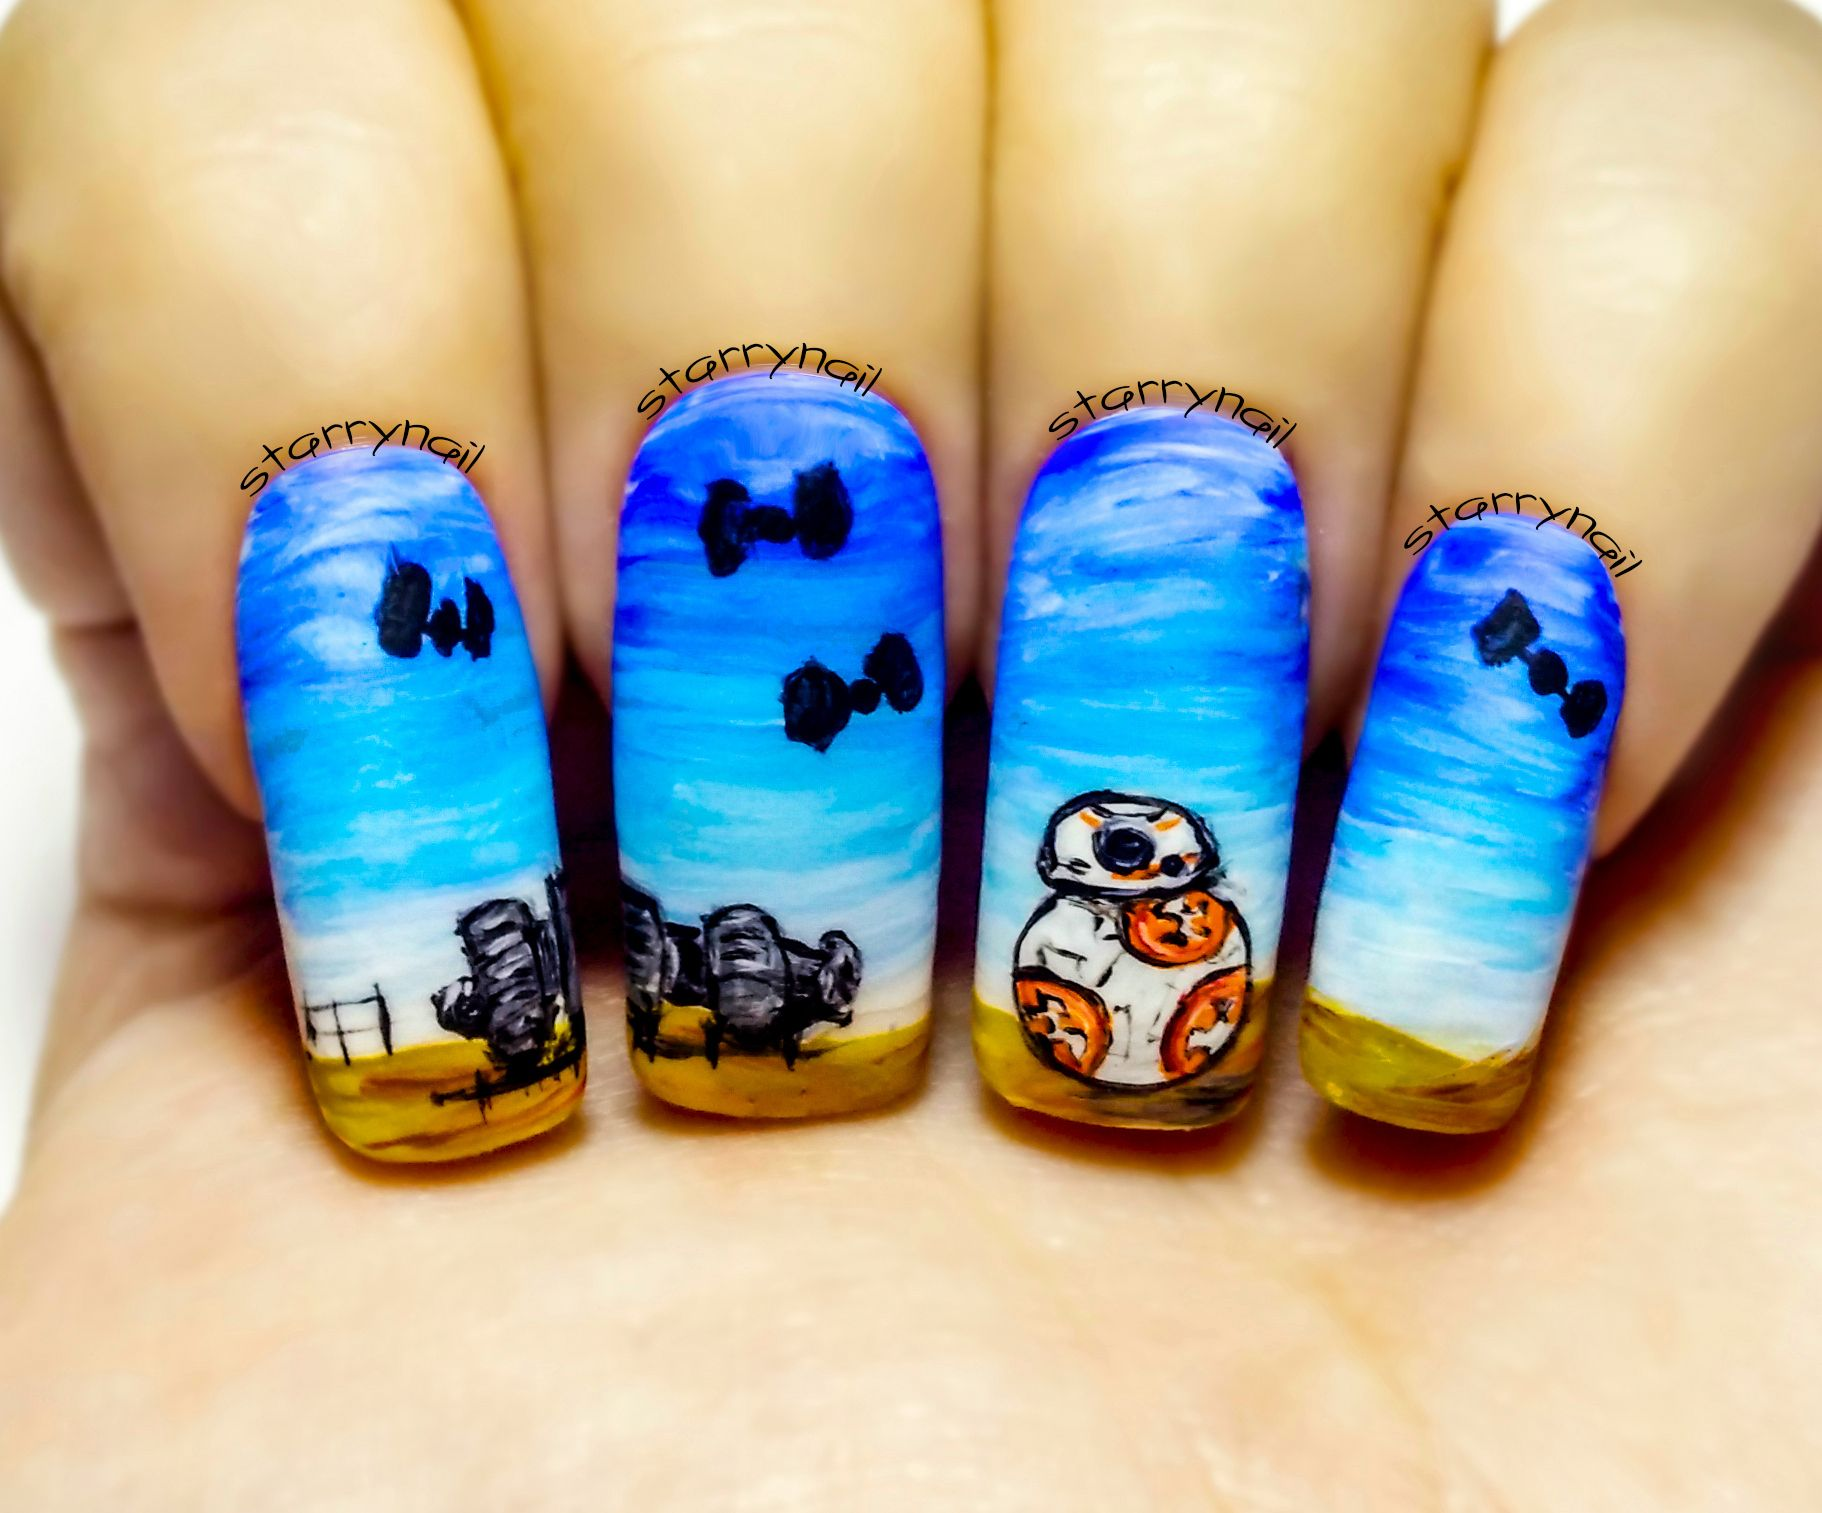 BB-8 ⎮ Star Wars - The Force Awakens ⎮ Freehand Nail Art Tutorial ...